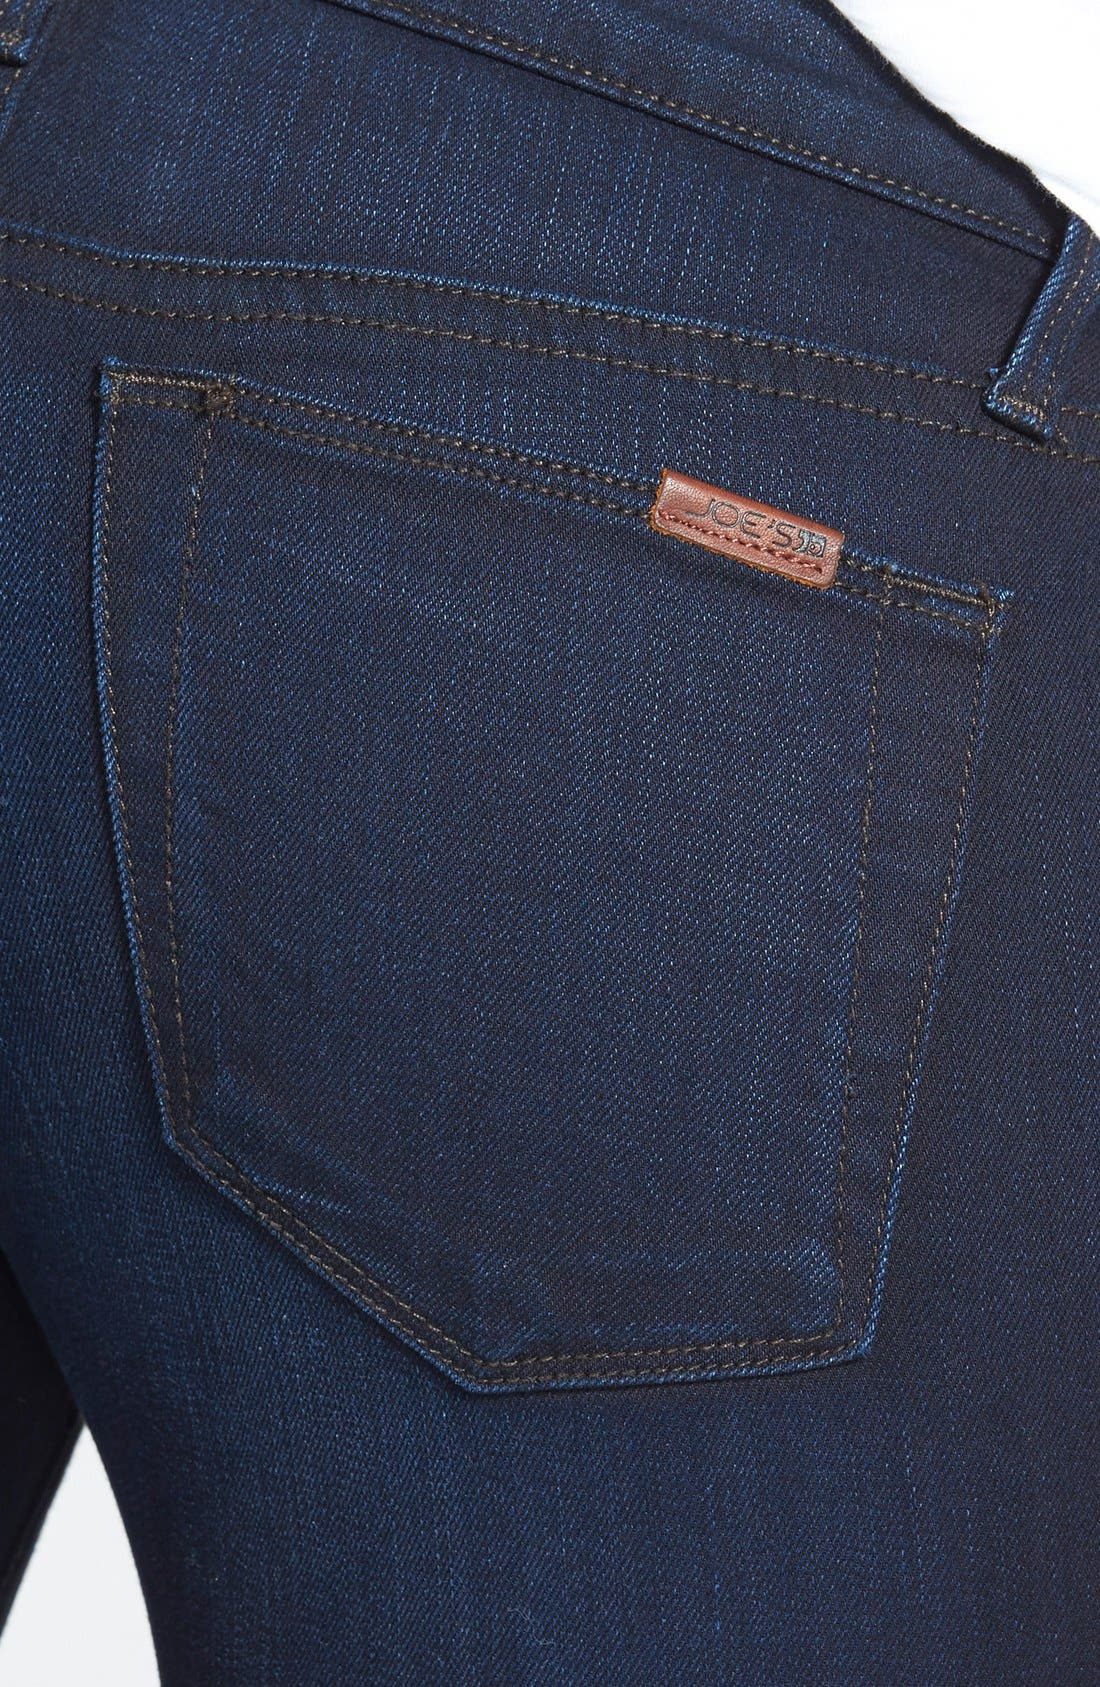 Alternate Image 3  - Joe's 'Flawless - Icon' Ankle Skinny Jeans (Blaire)